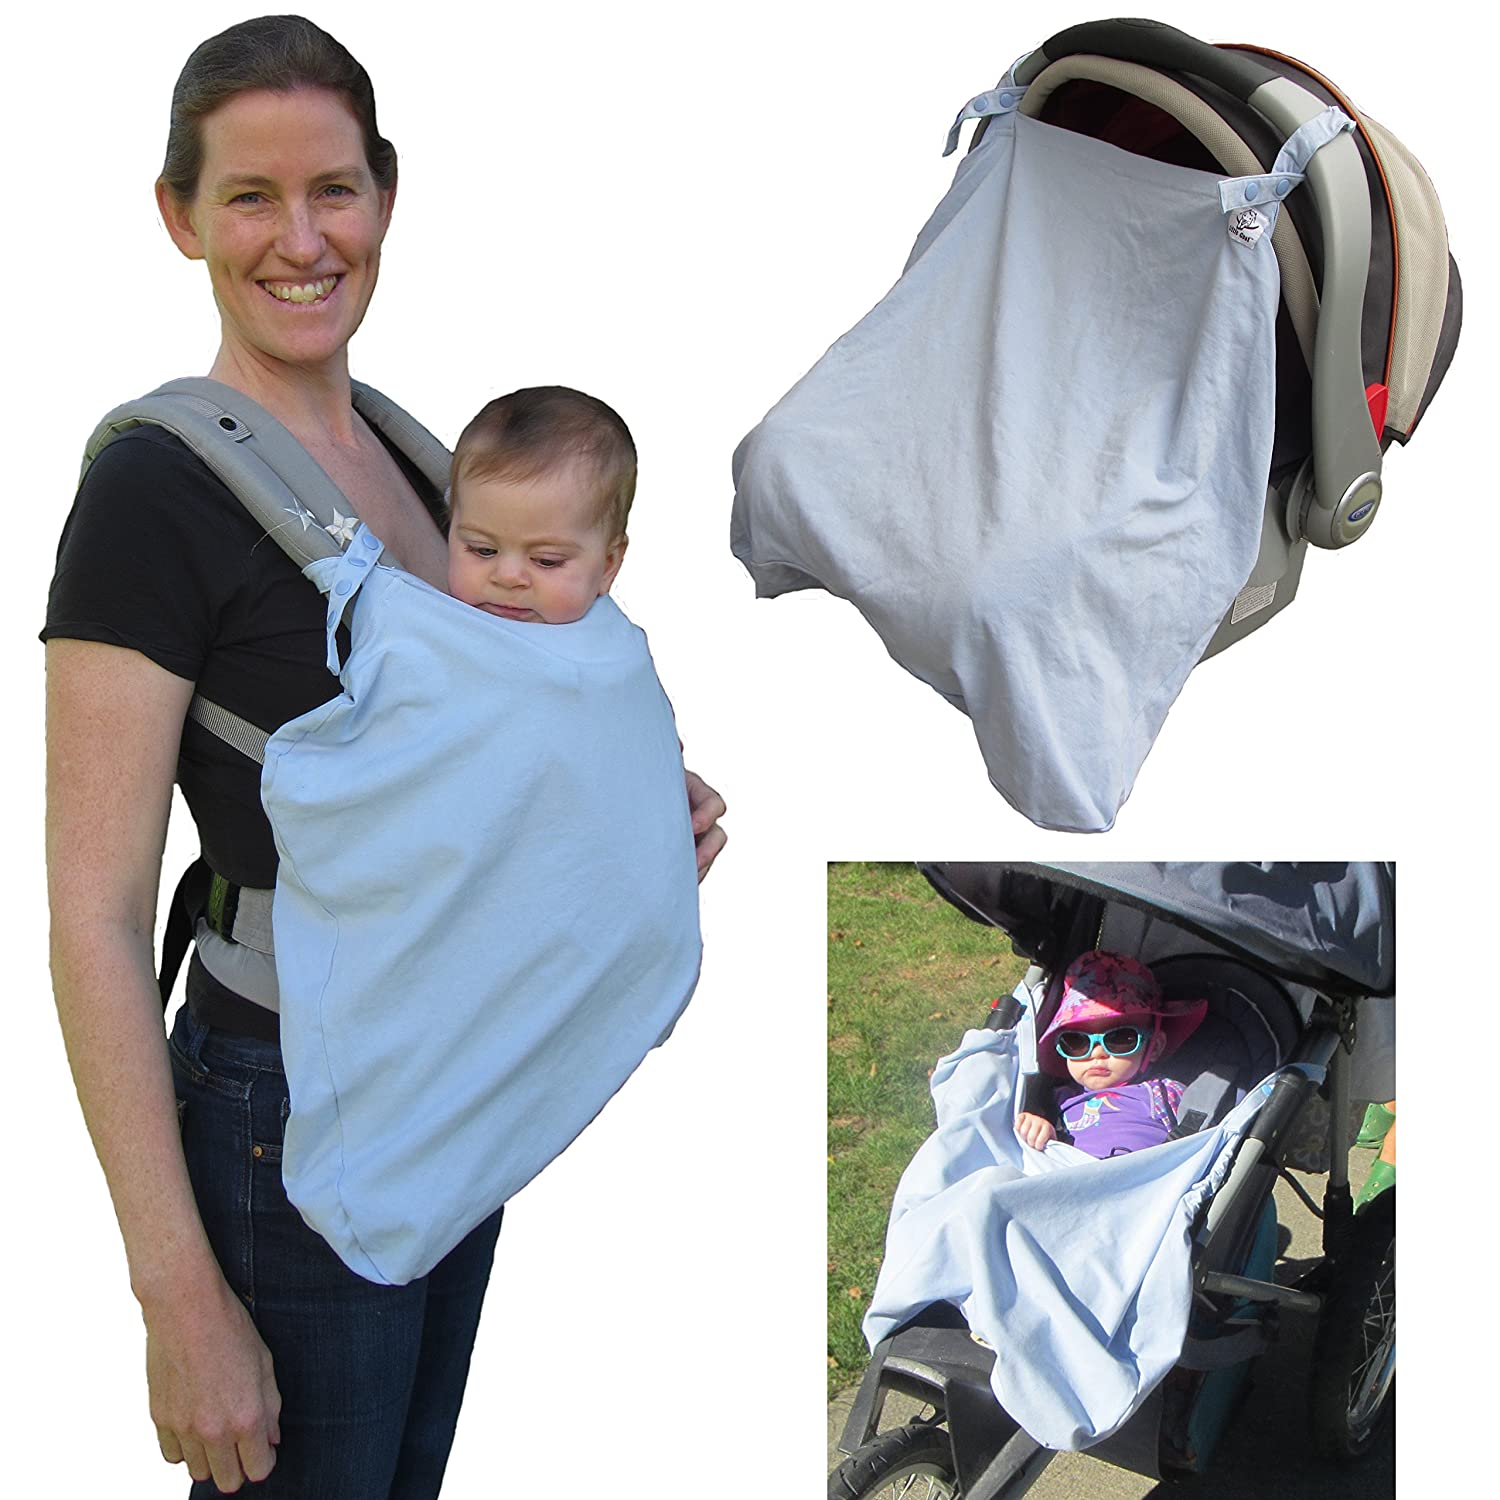 Little Goat Sun Cover UPF 50 for Car Seats, Baby Carriers & Strollers (Blue) Little Goat Carrier Covers